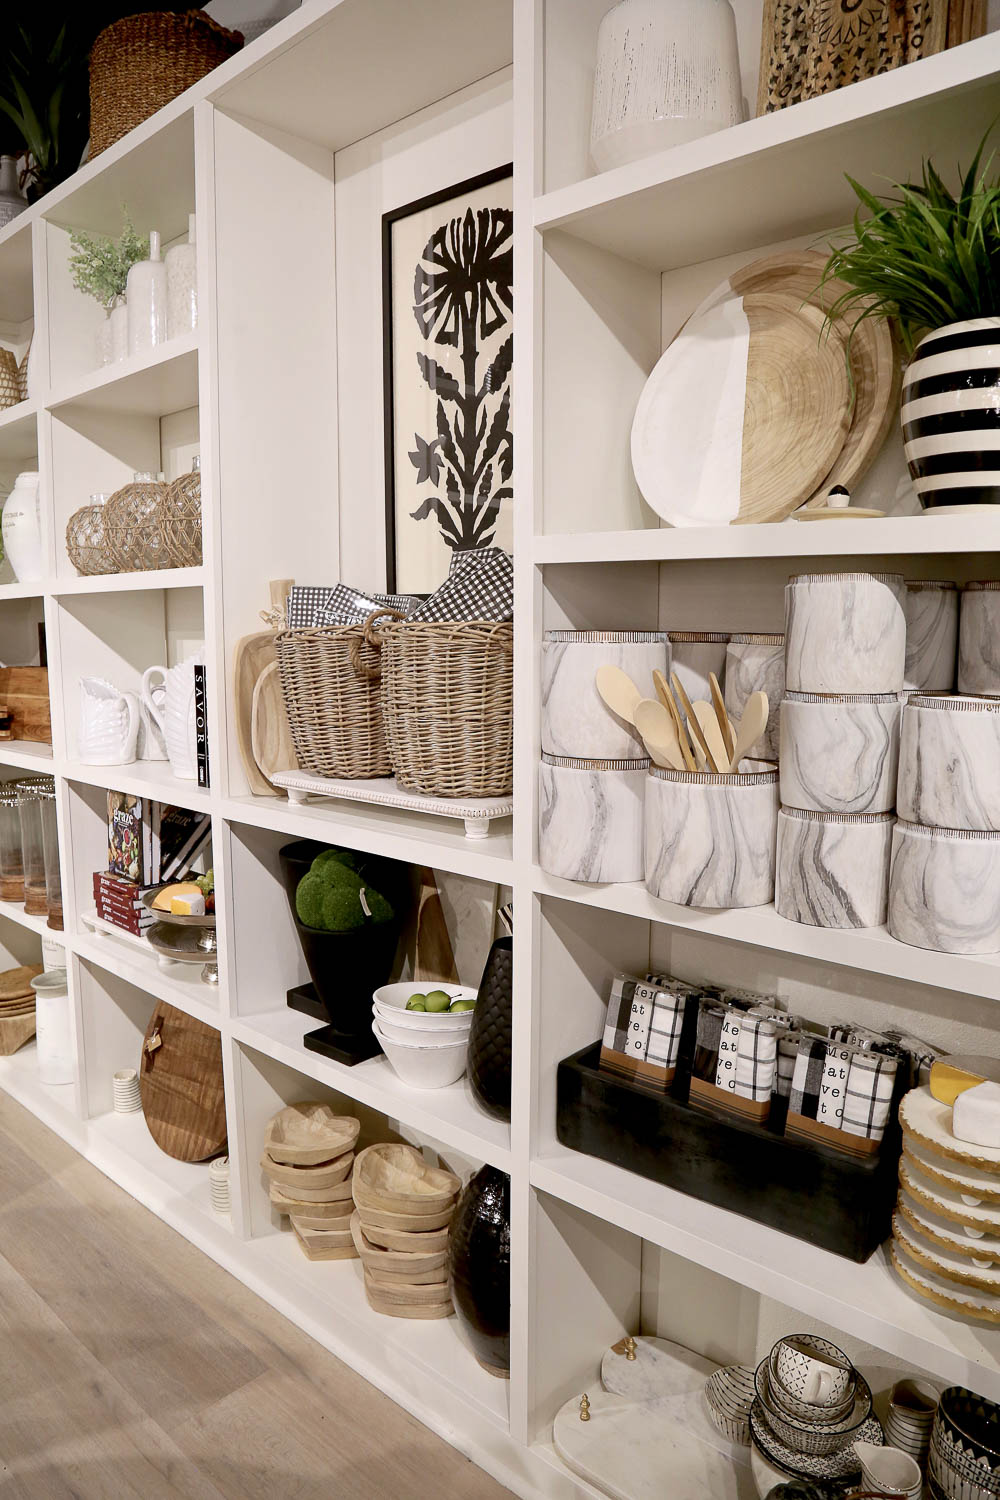 Styling vessels at Layered Home Lufkin